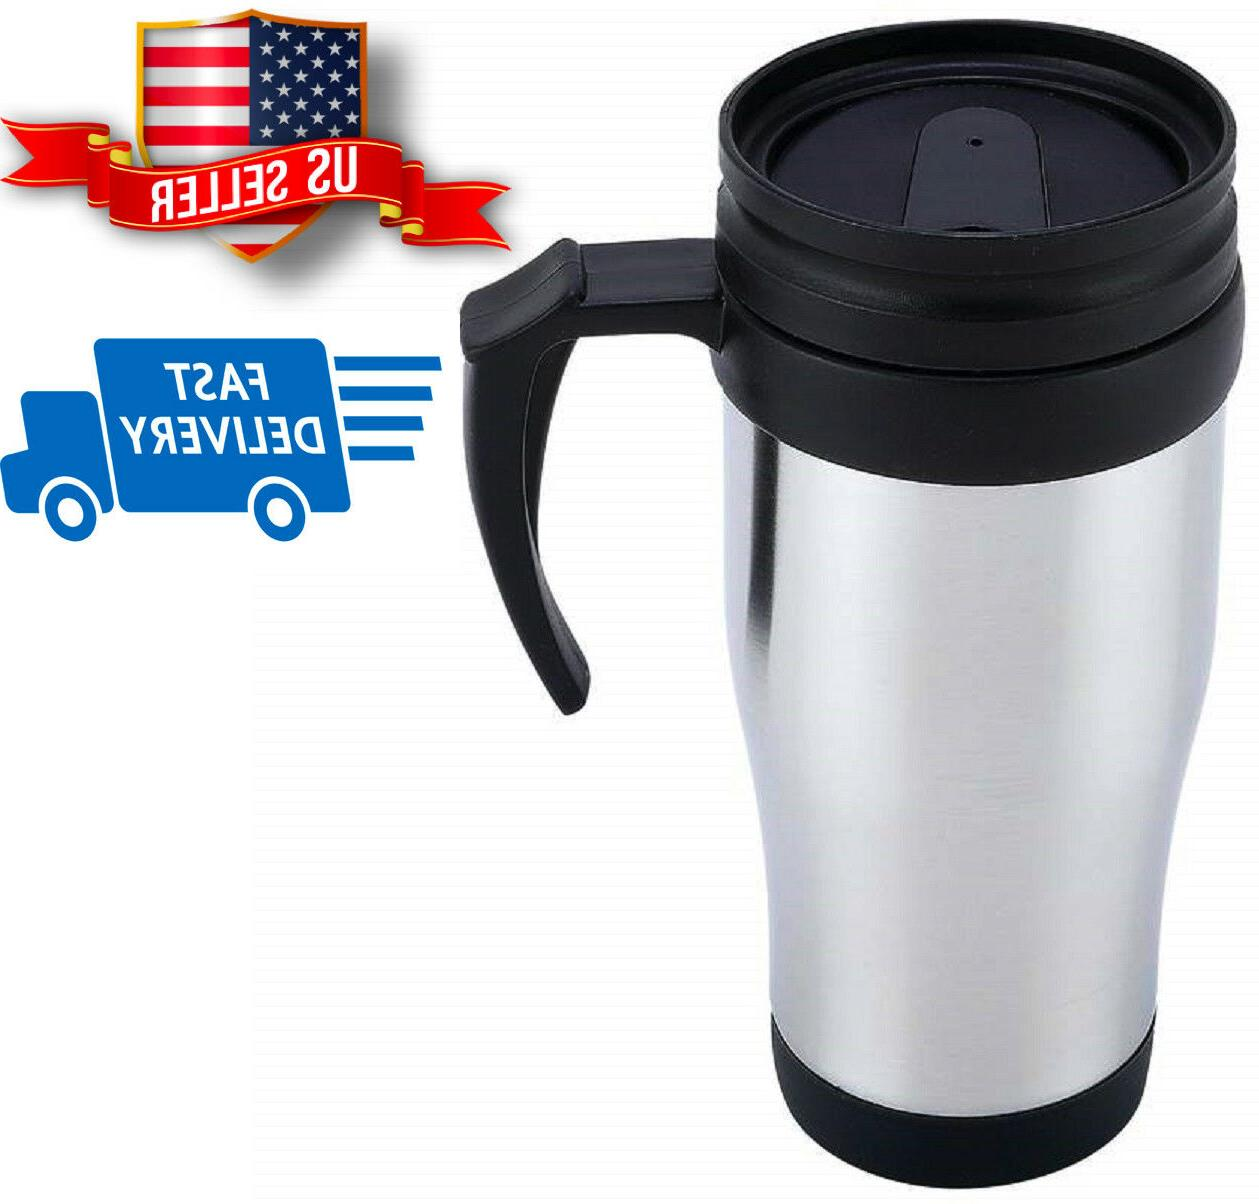 stainless steel lined travel mug with handle